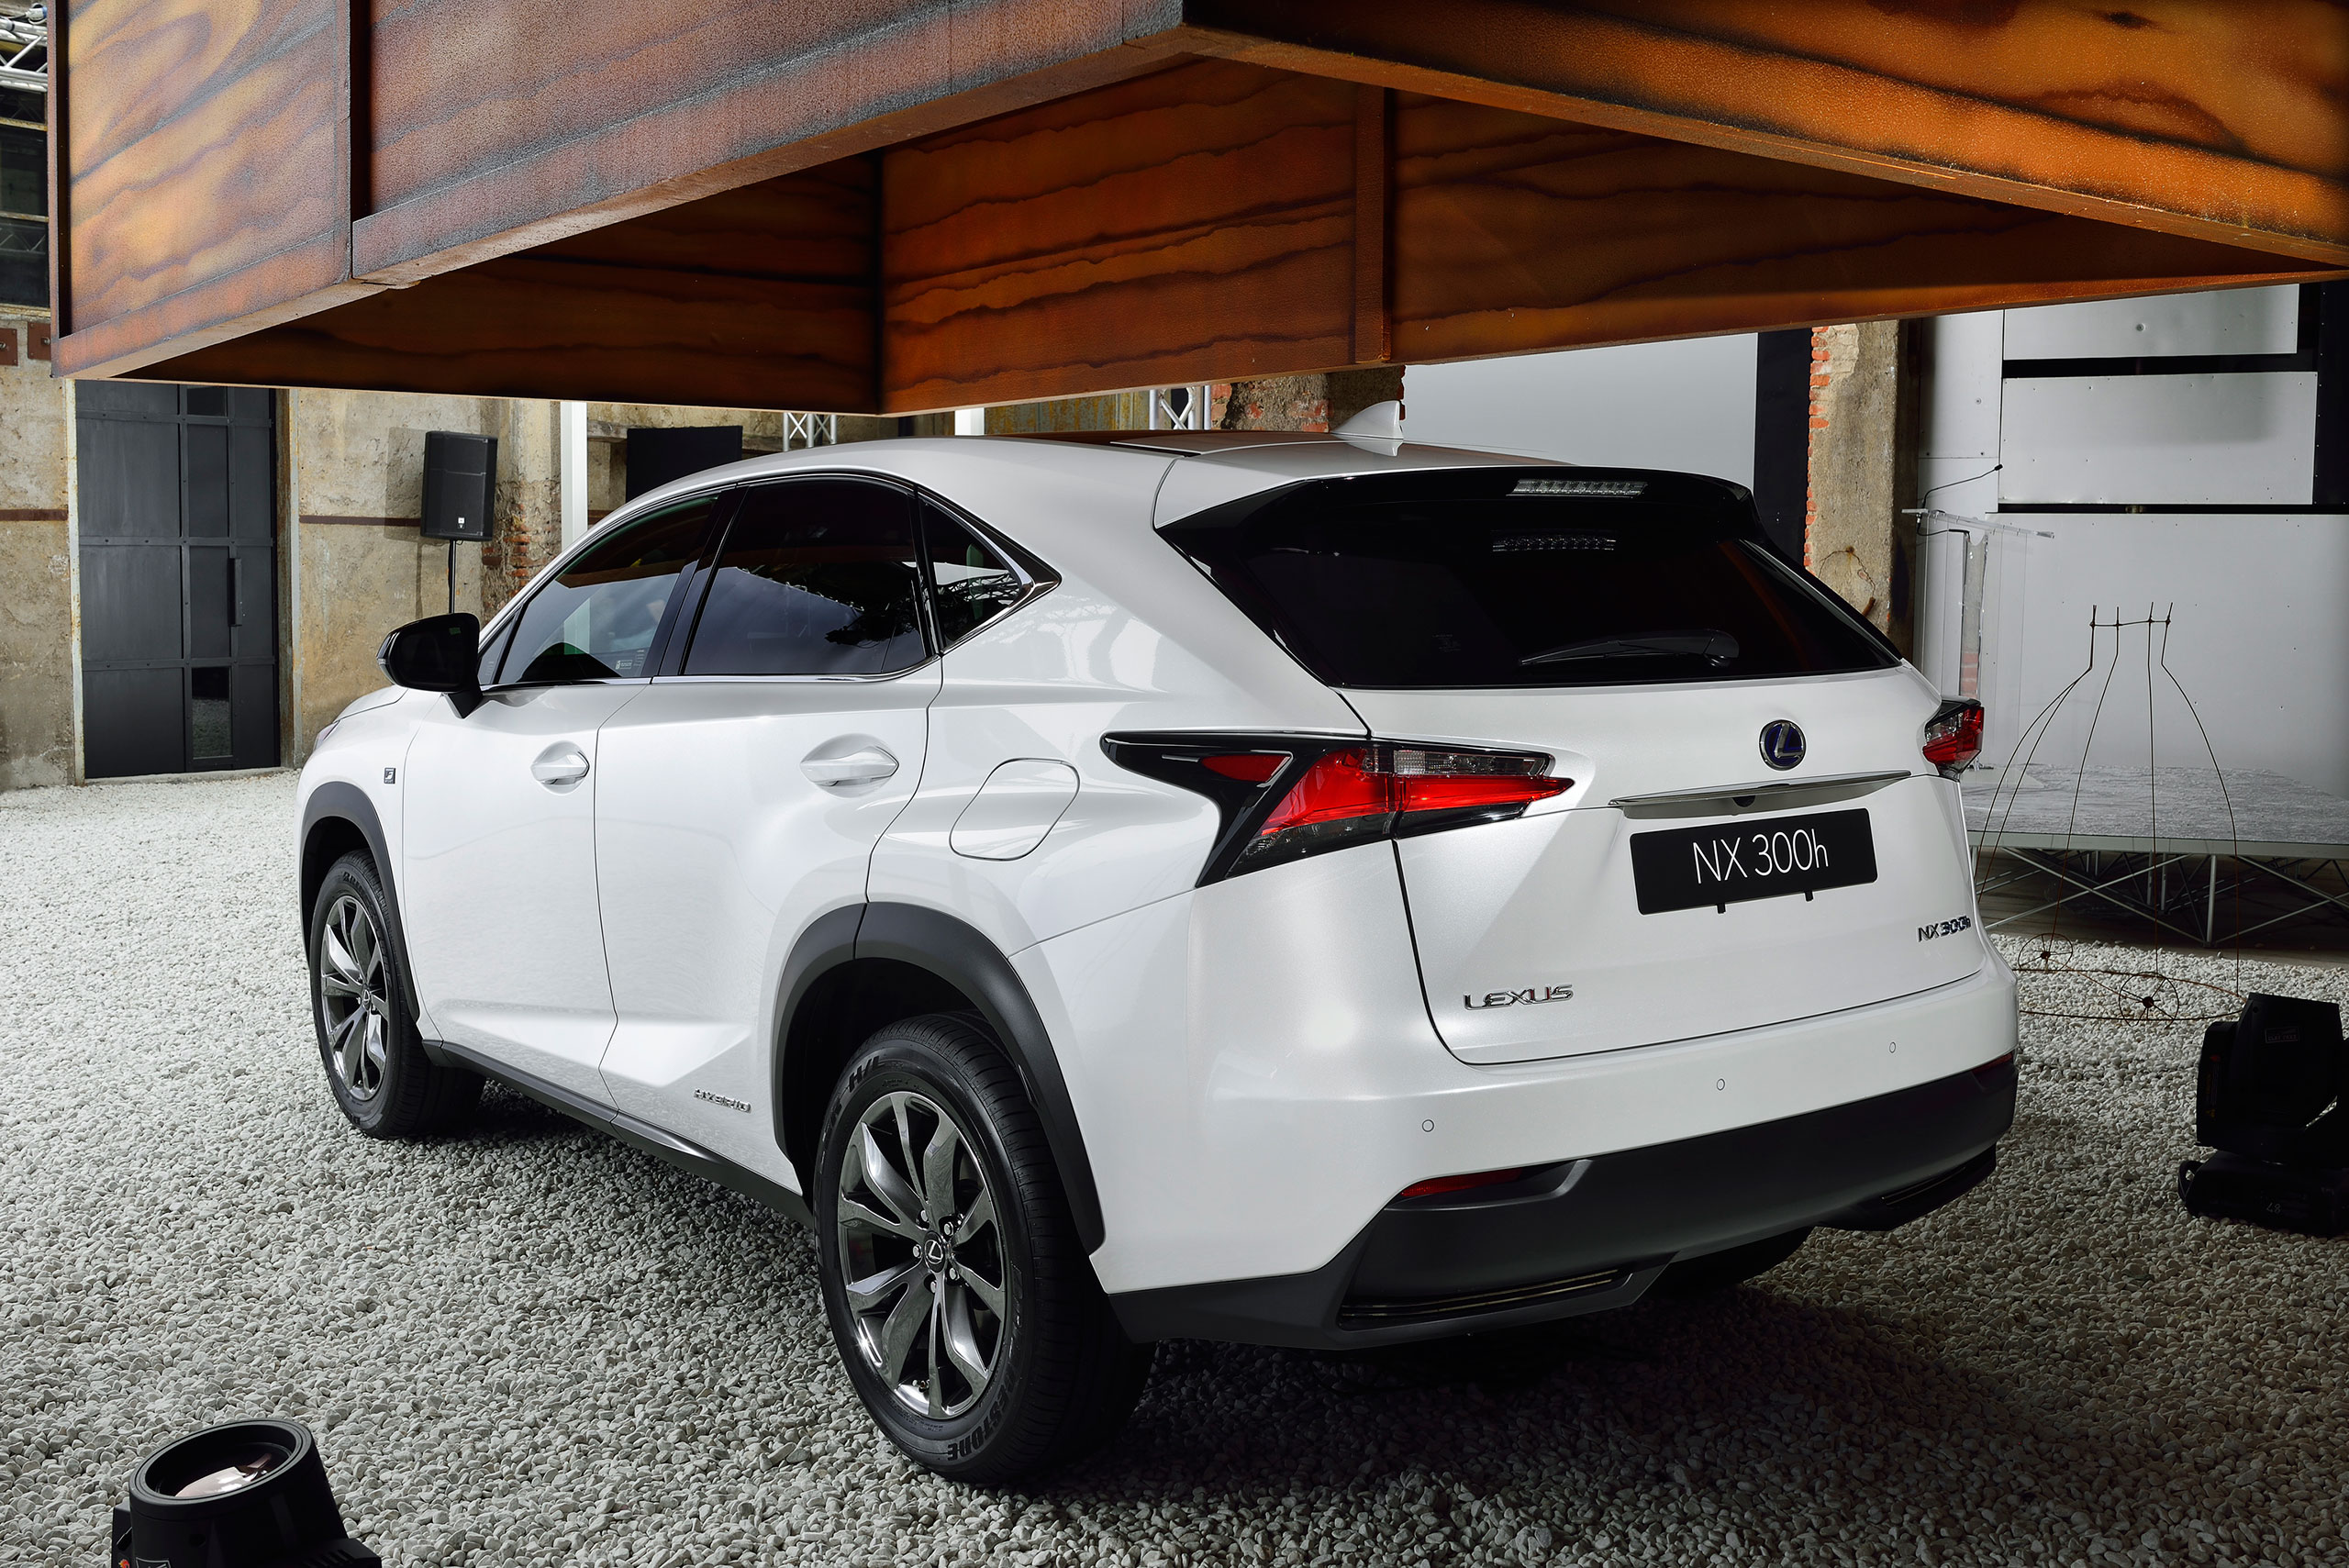 Lexus nx real world pictures and videos thread clublexus lexus forum discussion